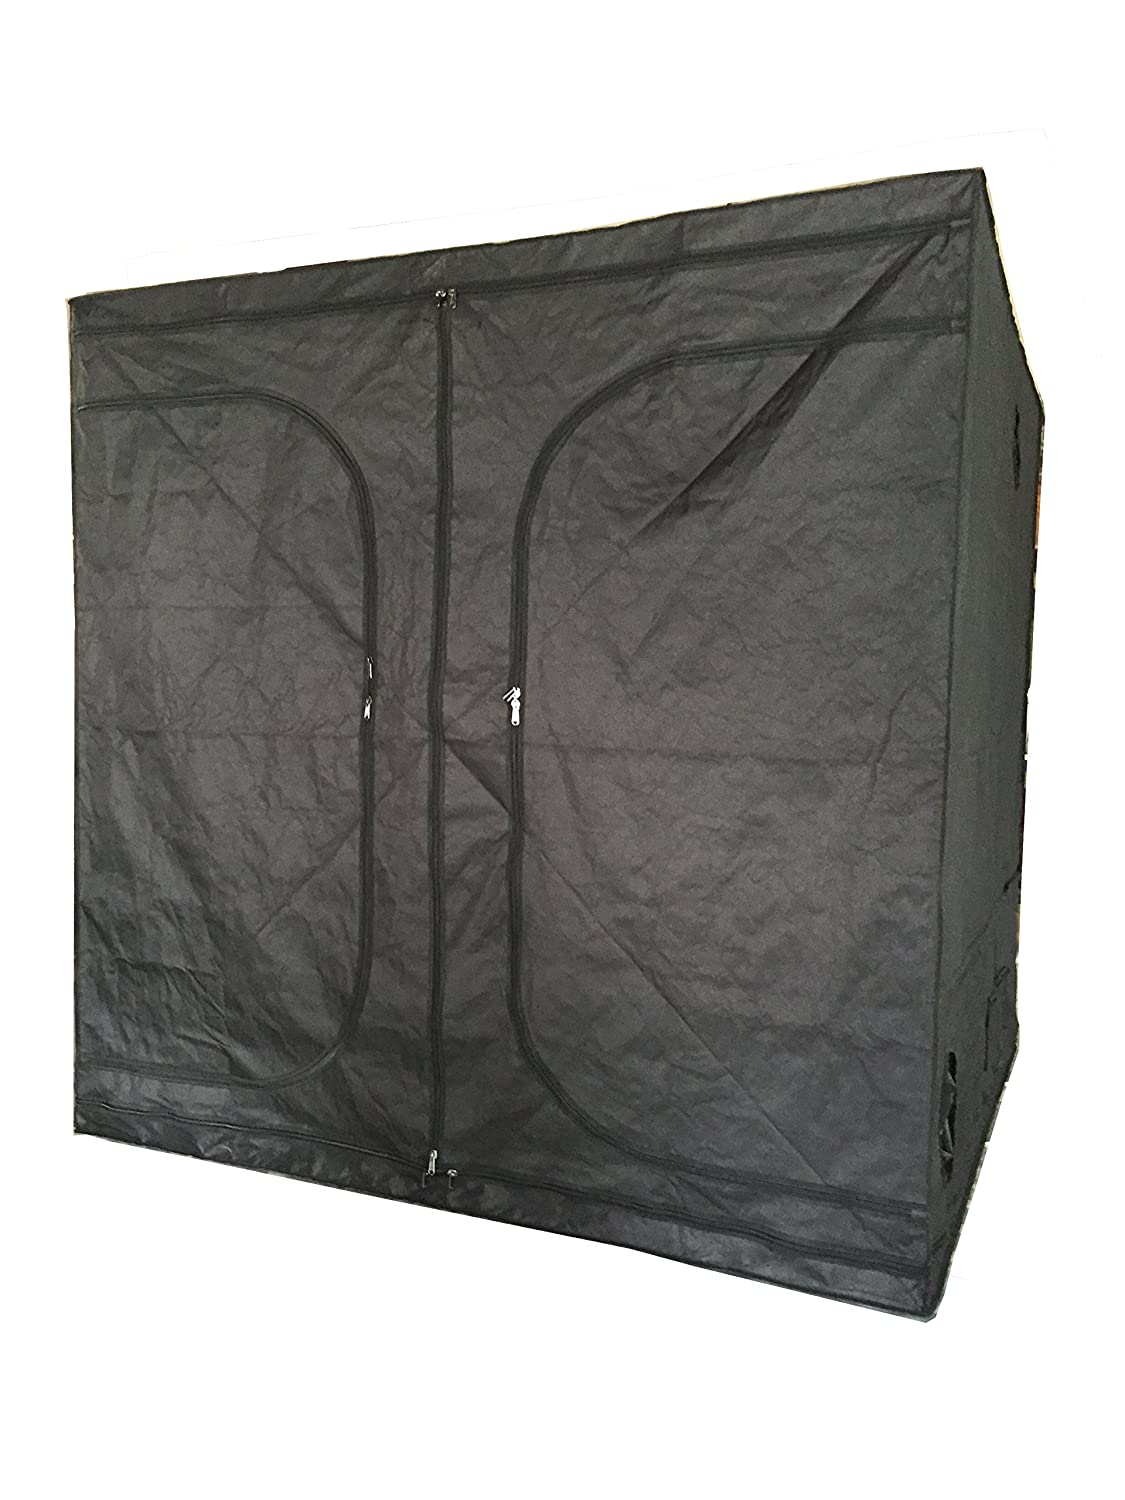 Black Orchid 60x60x140 New Indoor Grow Light Box Tent Aluminum Lined Bud Dark Room for Hydroponic Fan 7 Sizes (60x60x140CM) UK8415 60-60-140